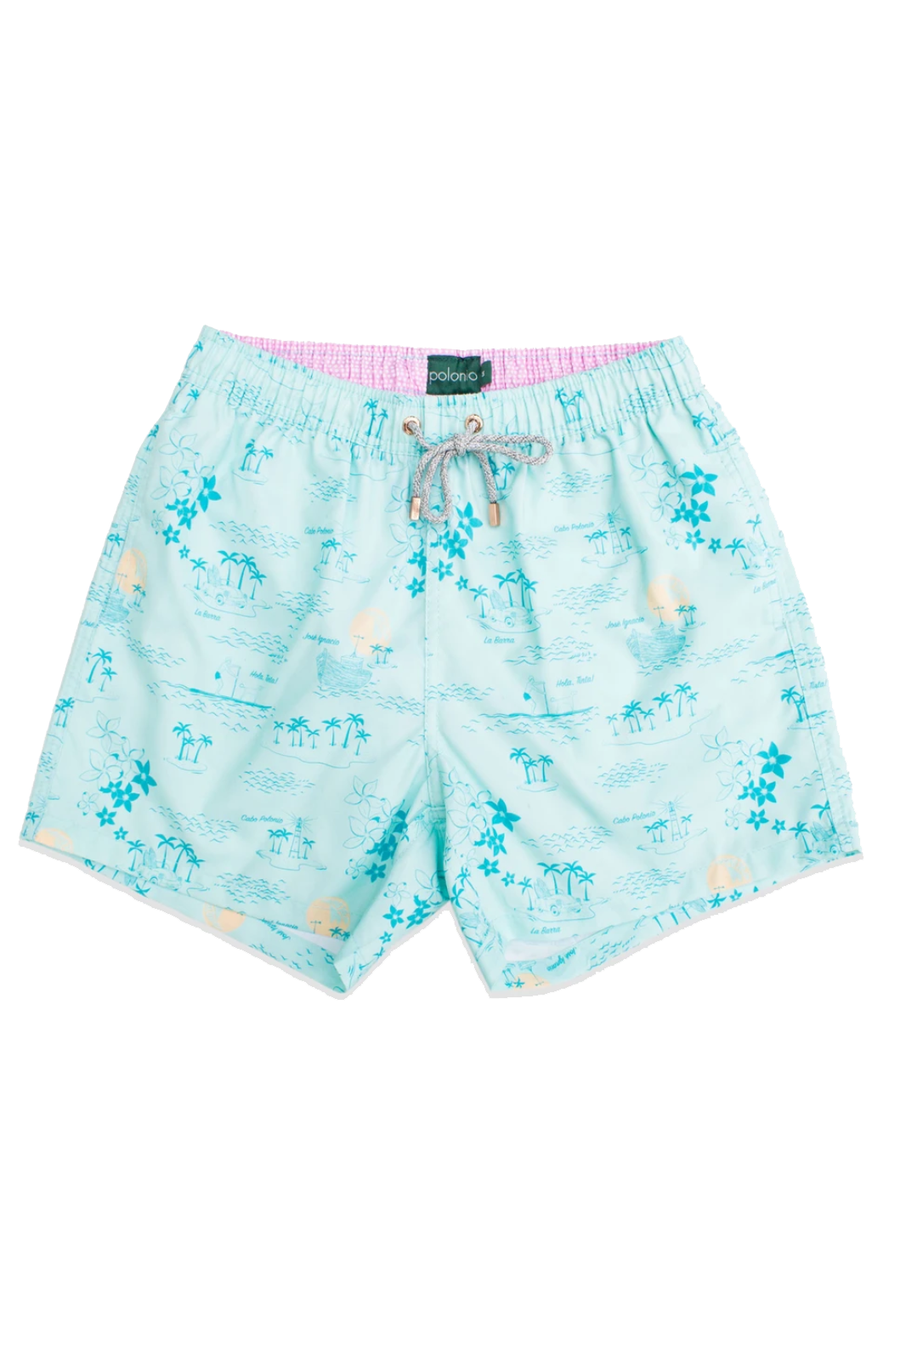 La Isla Classic Cut Mens Swim Trunk